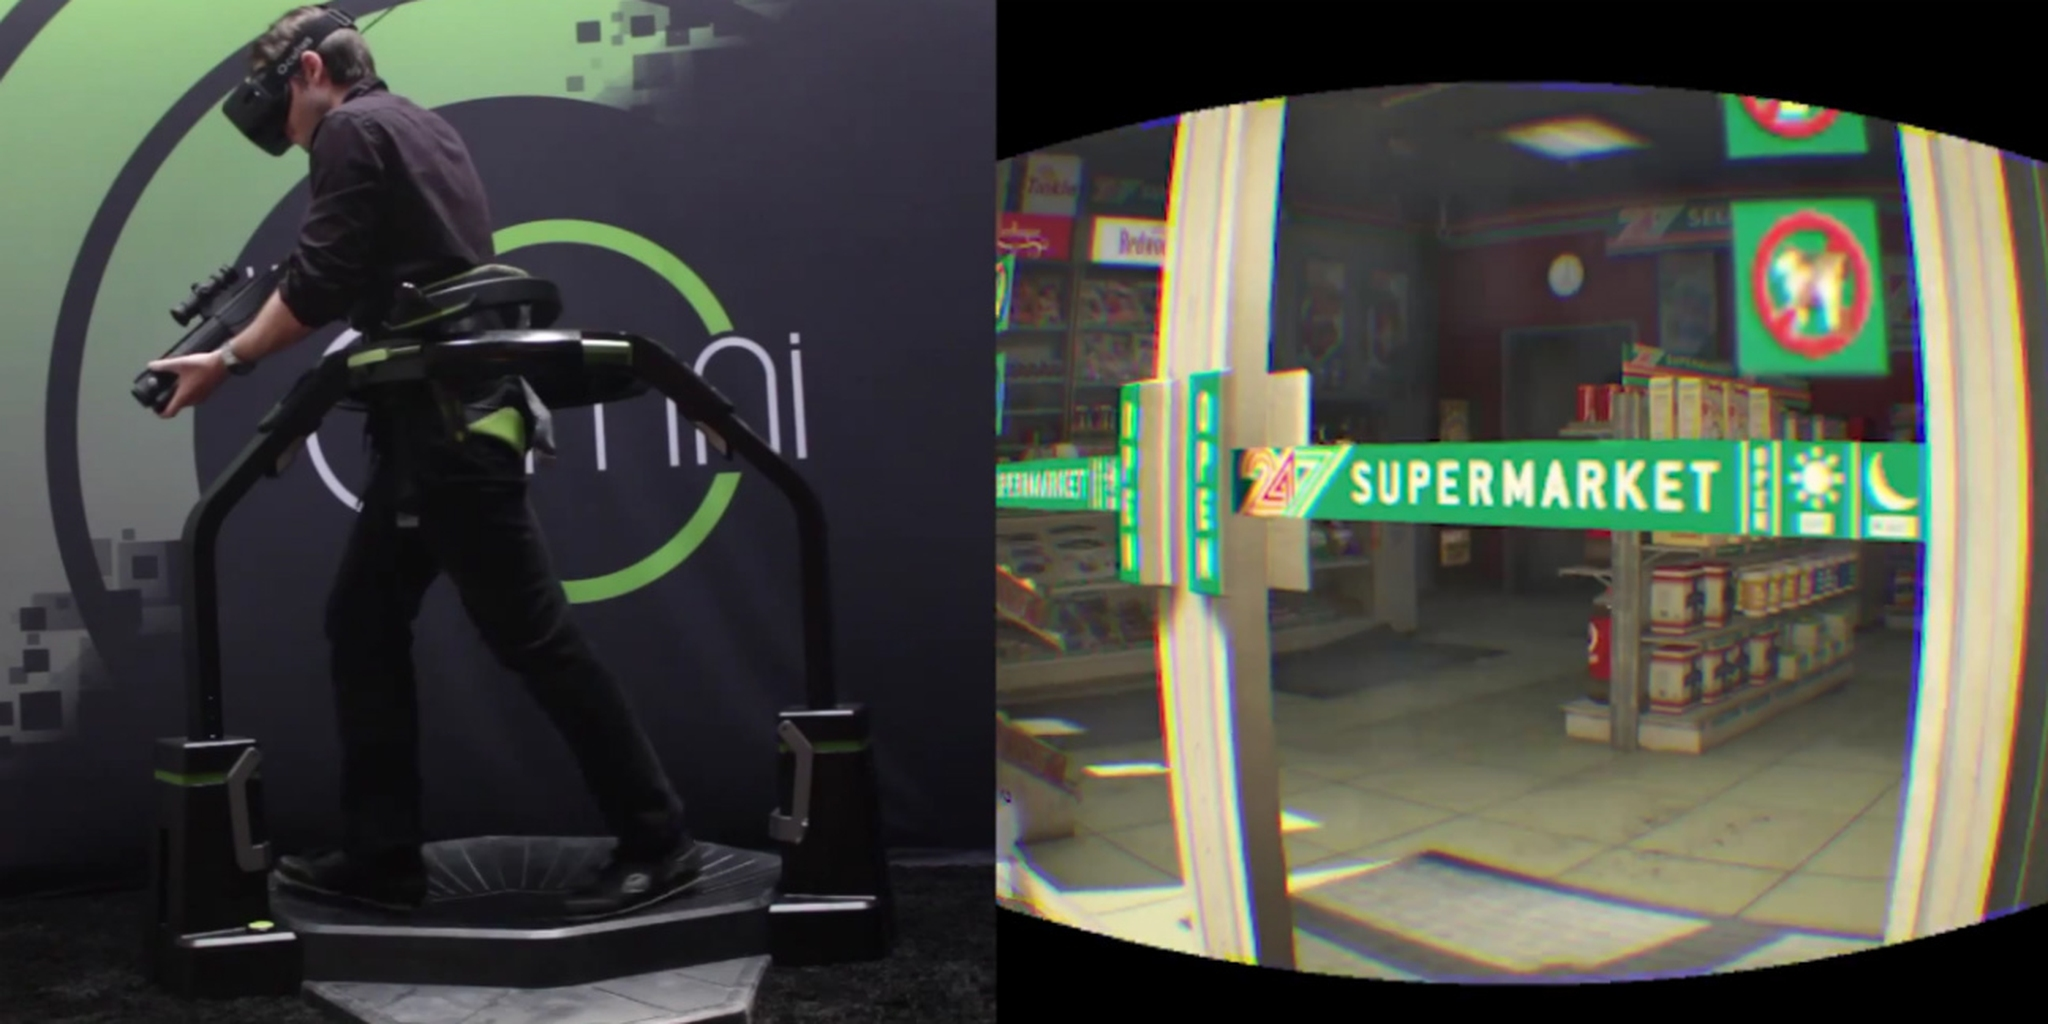 Screengrab from a YouTube video, demoing the Virtuix Omni VR system.